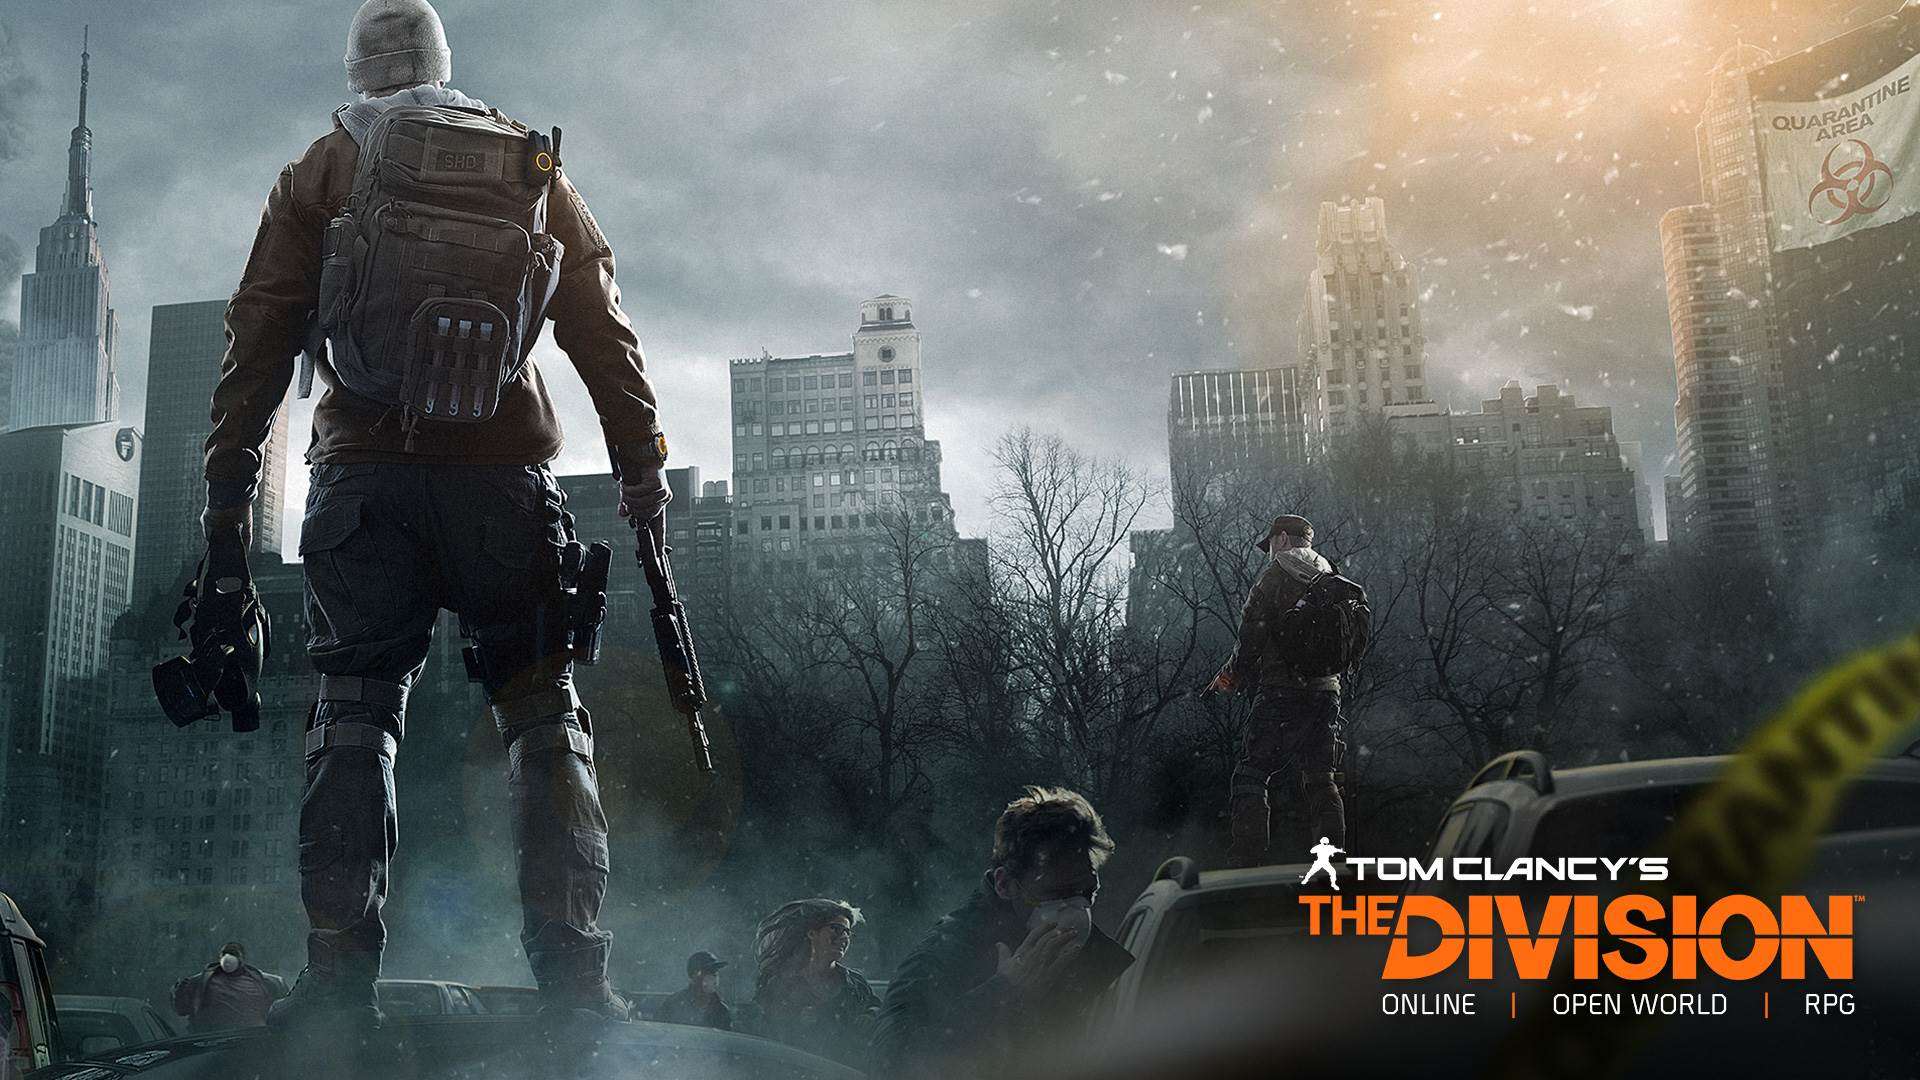 tom clancy s the division wallpapers in 1080p hd. Black Bedroom Furniture Sets. Home Design Ideas